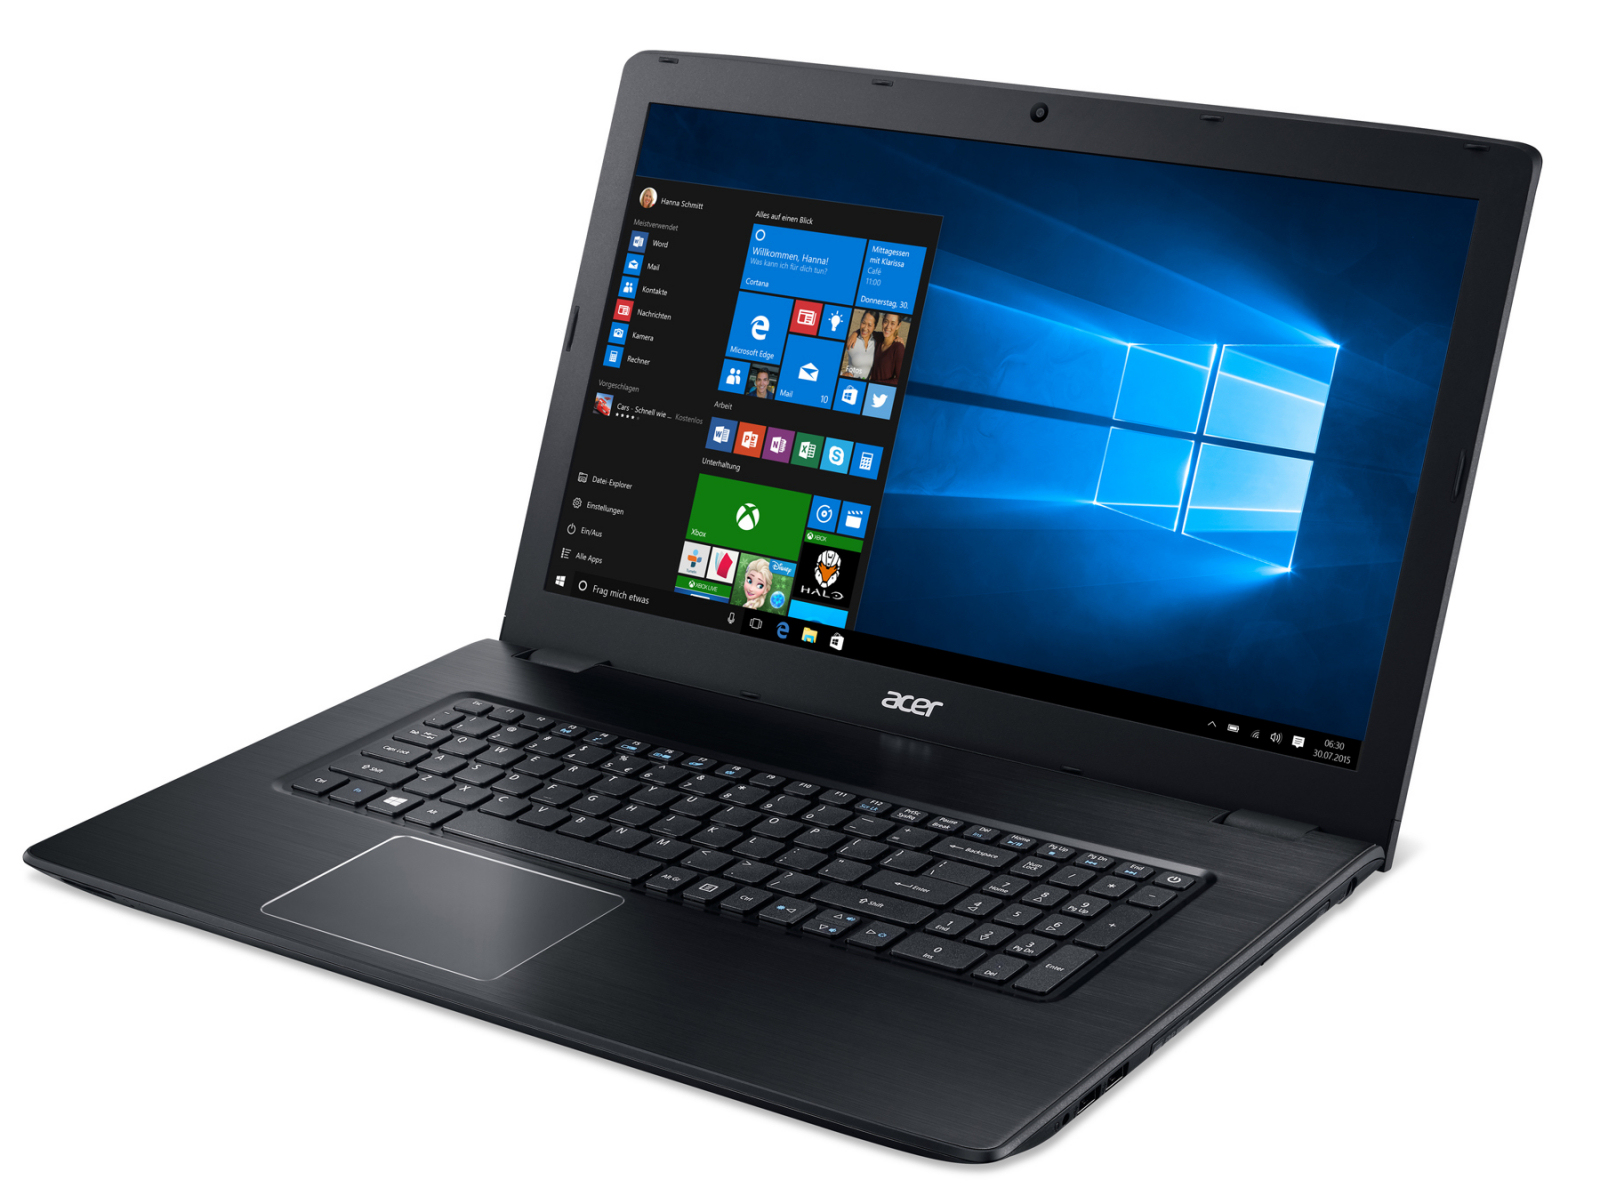 ACER ASPIRE E5-774G REALTEK LAN DRIVER FOR WINDOWS 8